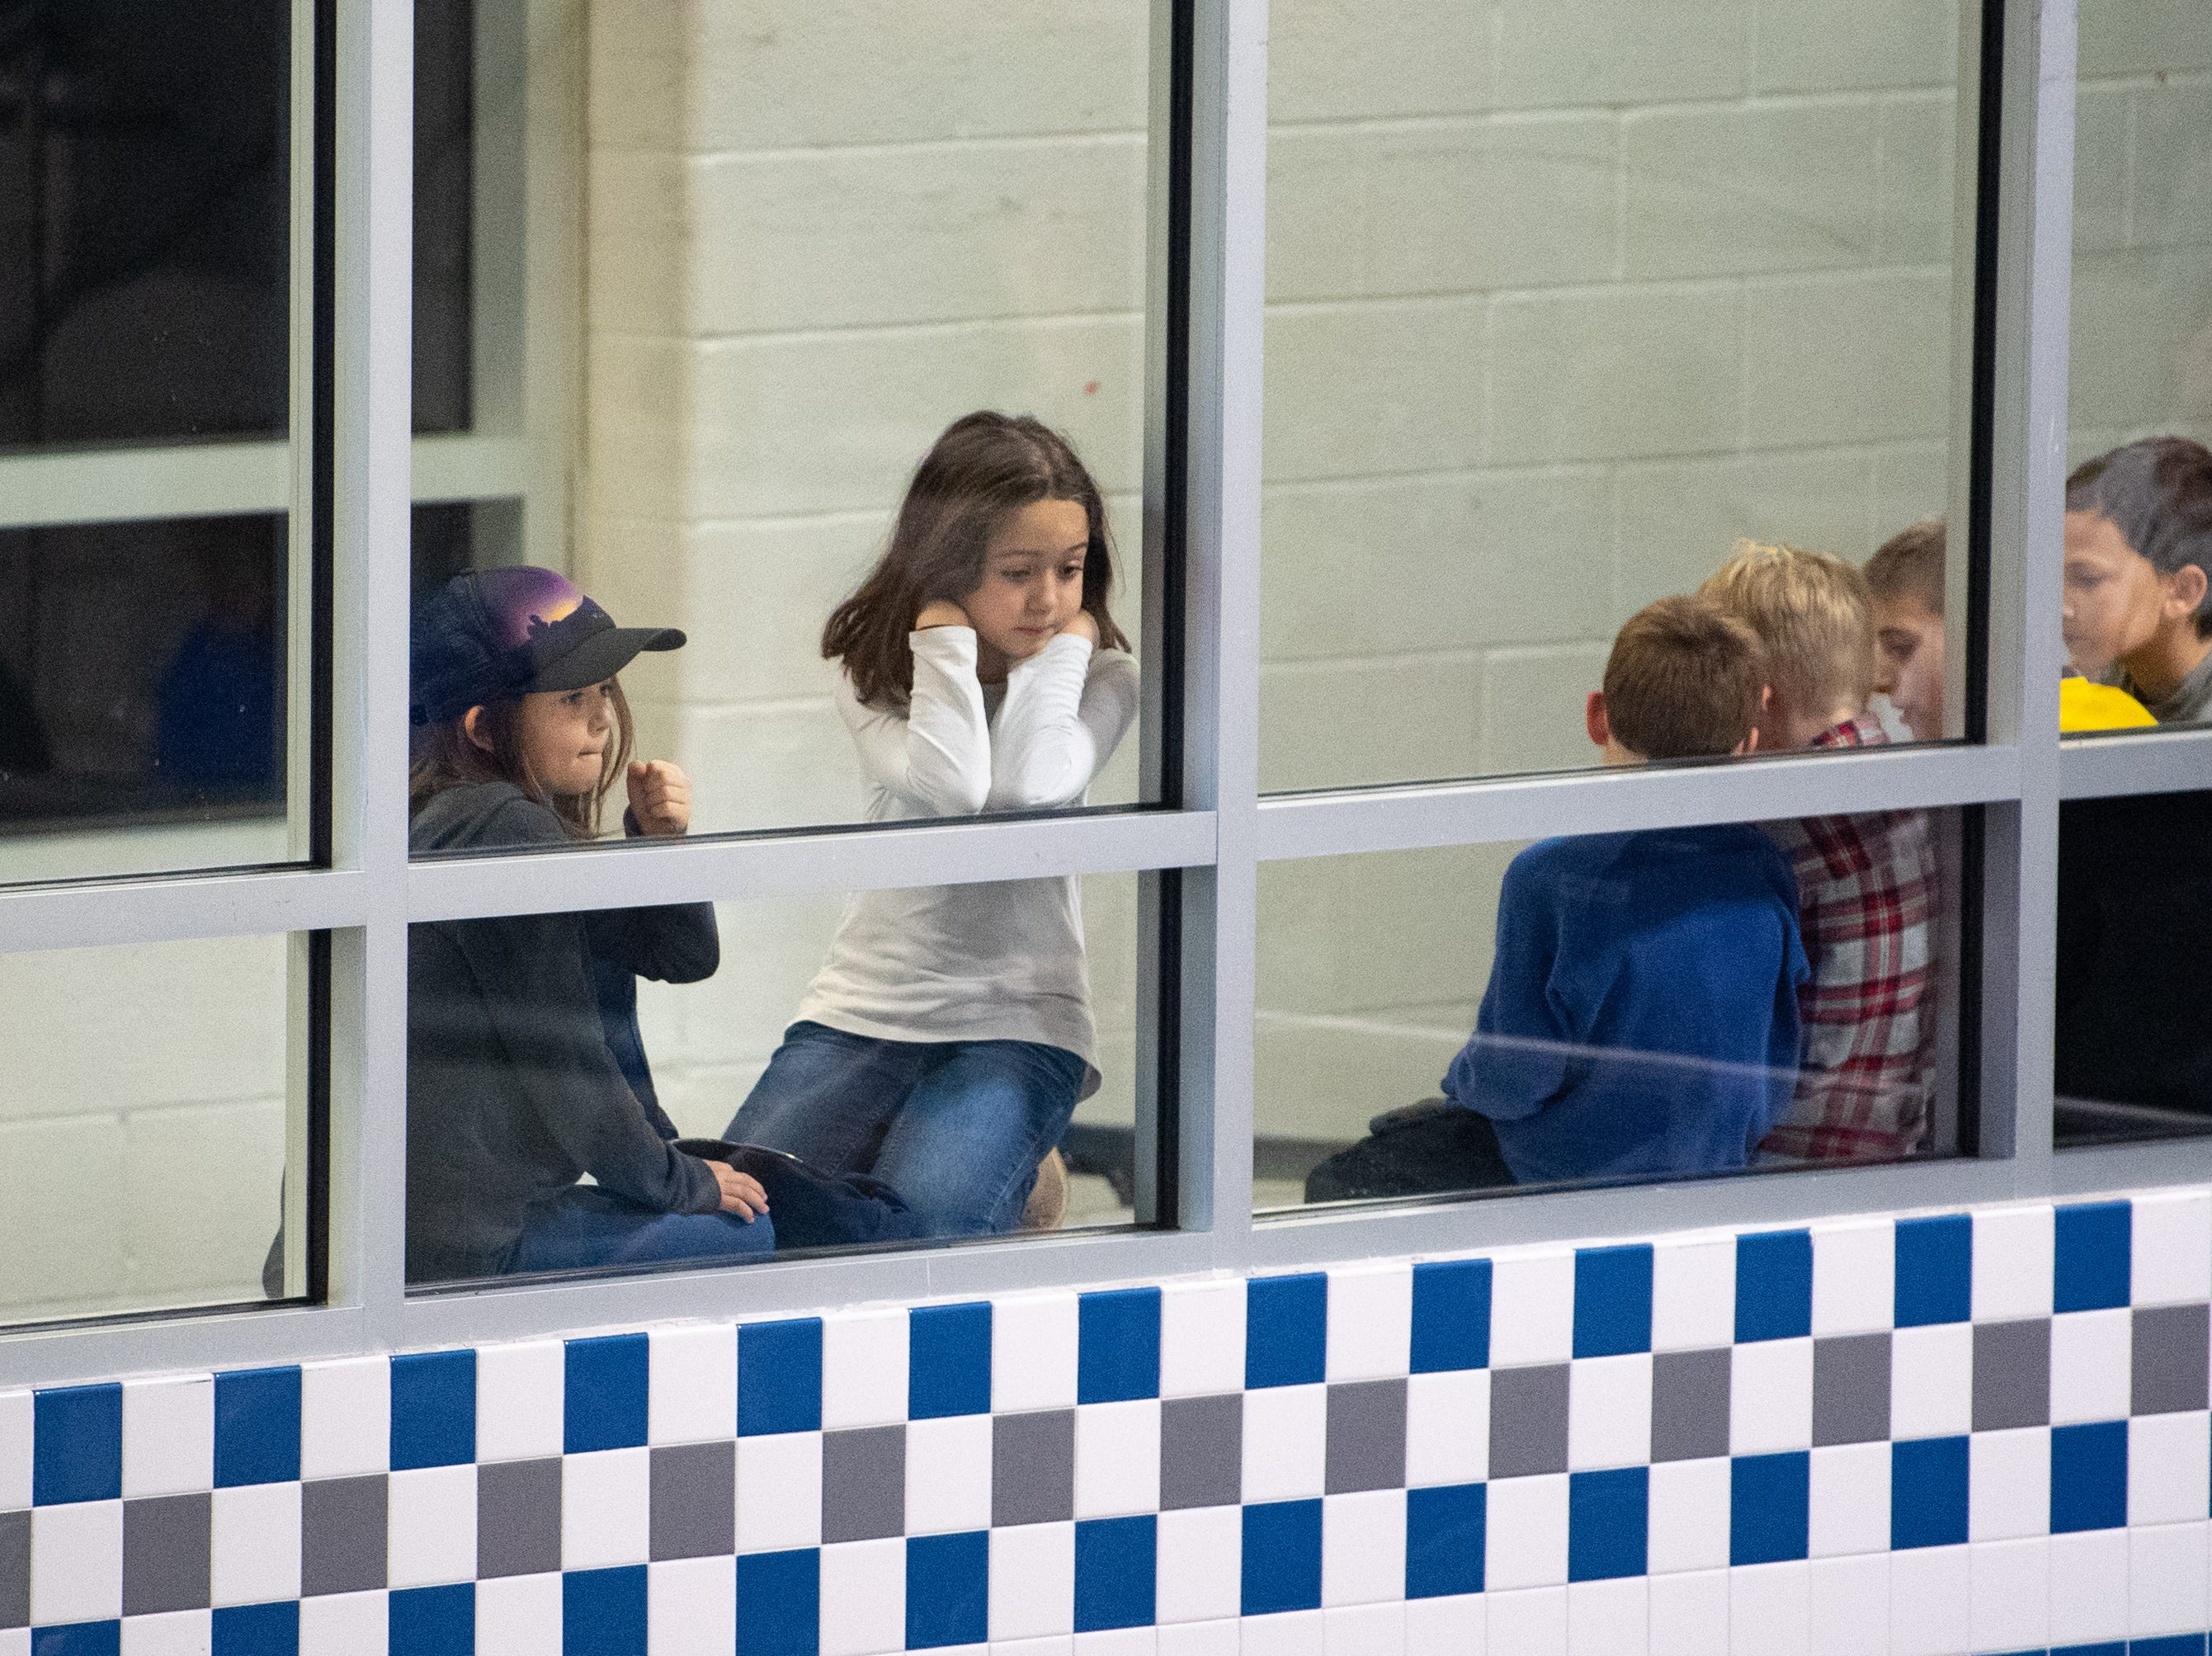 Fans watch the meet through the window outside of the pool area during the boys' and girls' swim meet between Dallastown and Central York at Dallastown Area High School, January 10, 2019. The Panthers defeated the Wildcats 93 to 77 and the Lady Panthers defeated the Lady Wildcats 96 to 74.